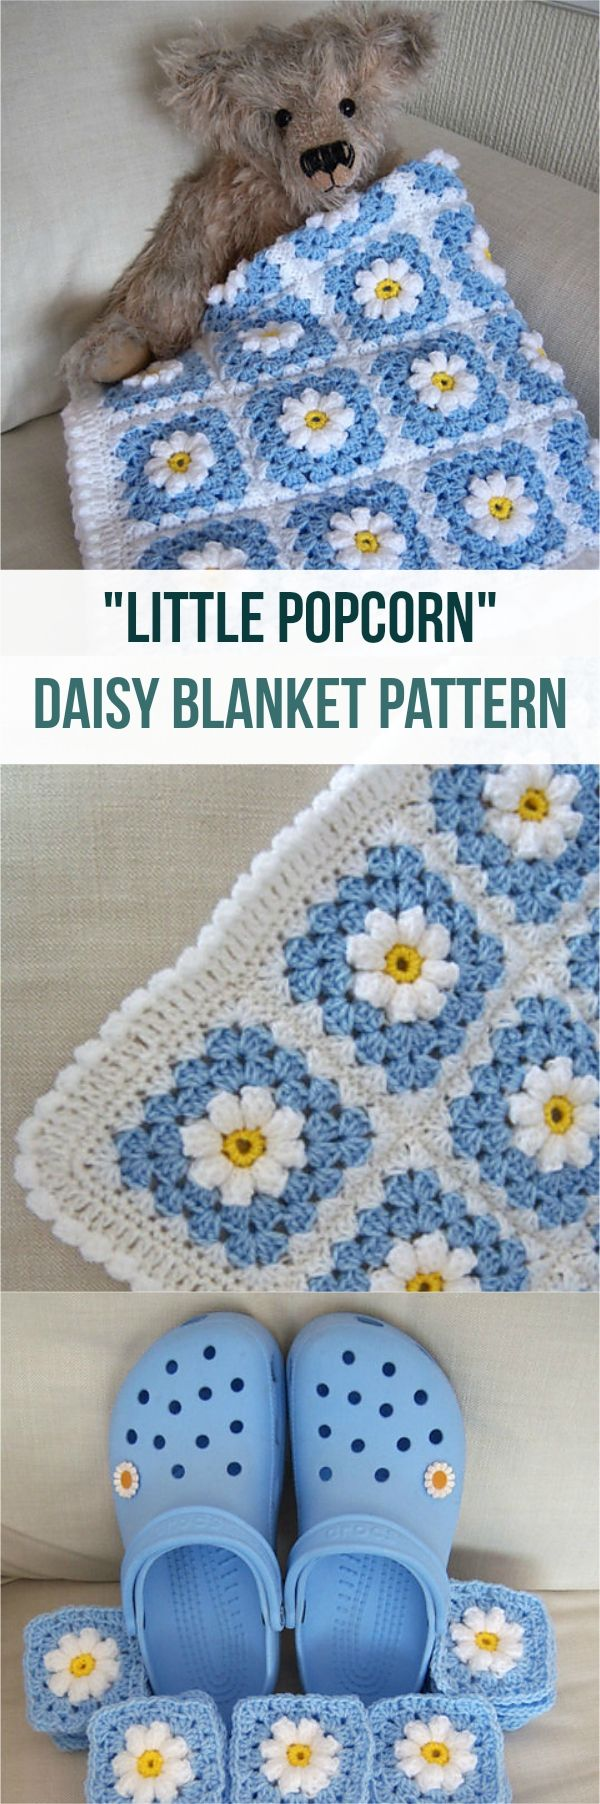 Little Popcorn Daisy Blanket | Crochet, Blanket and Free crochet